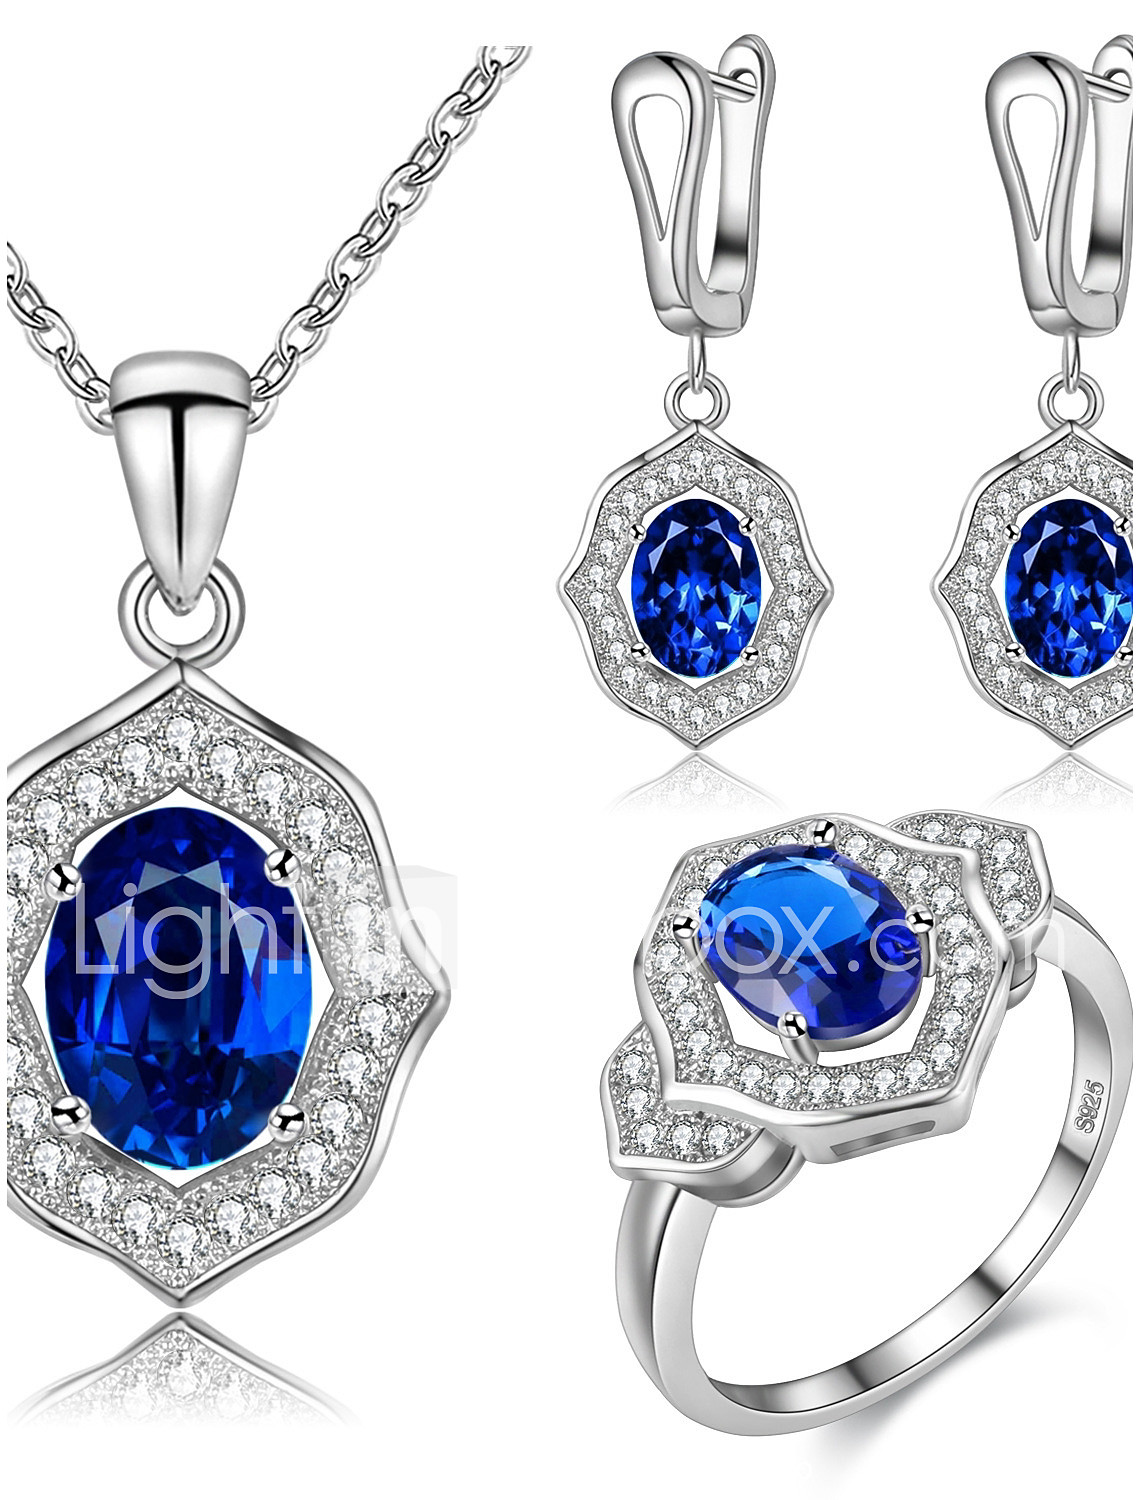 bc1df16ad64a3 Women's Sapphire AAA Cubic Zirconia Drop Earrings Pendant Necklace ...